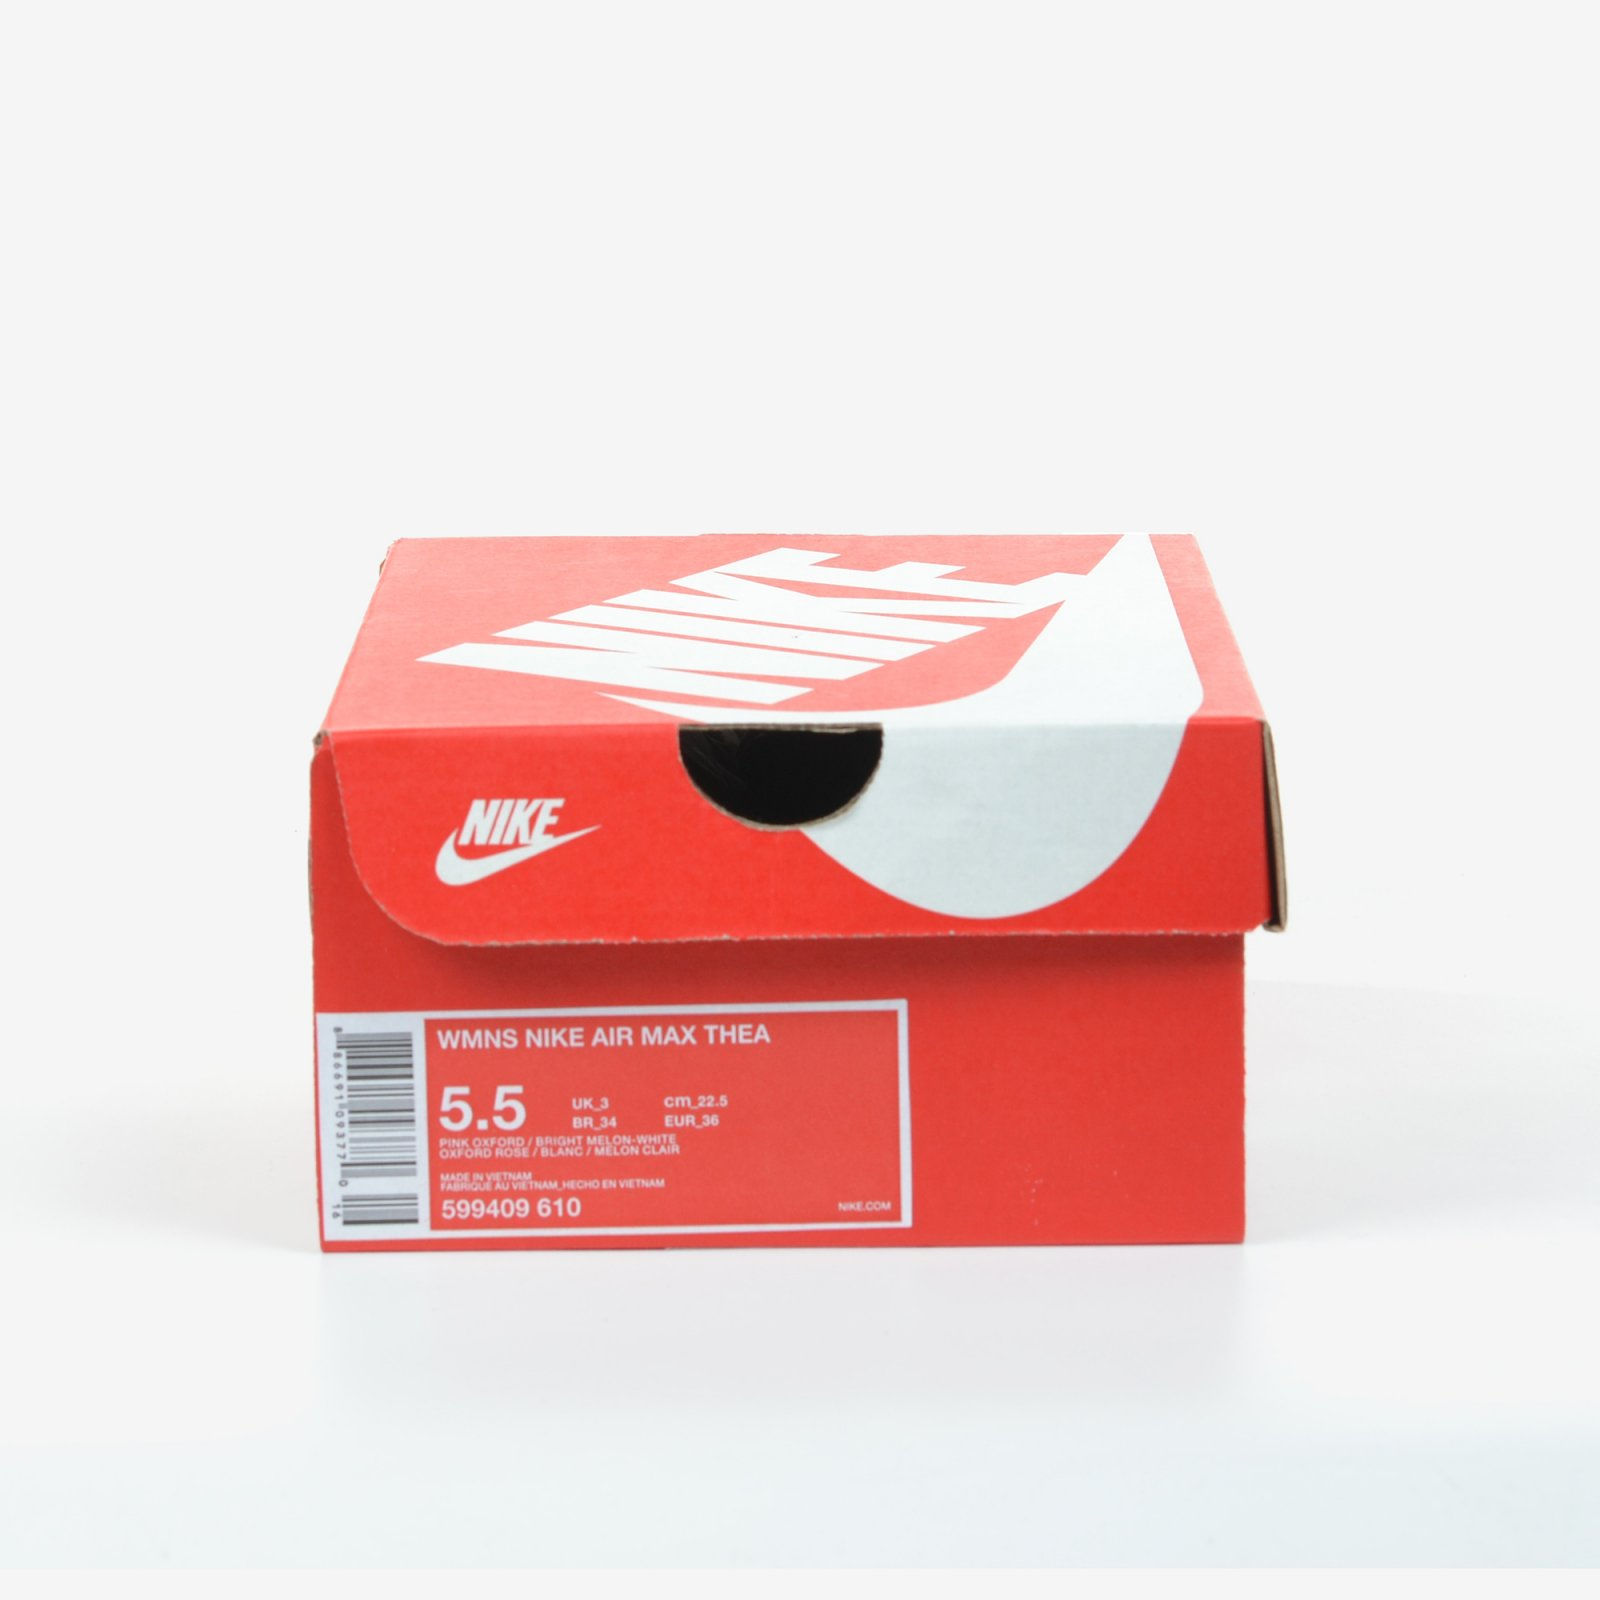 Details about Nike Women's Air Max Thea Pink Oxford Melon Size 5.5 Running Shoes 599409 610